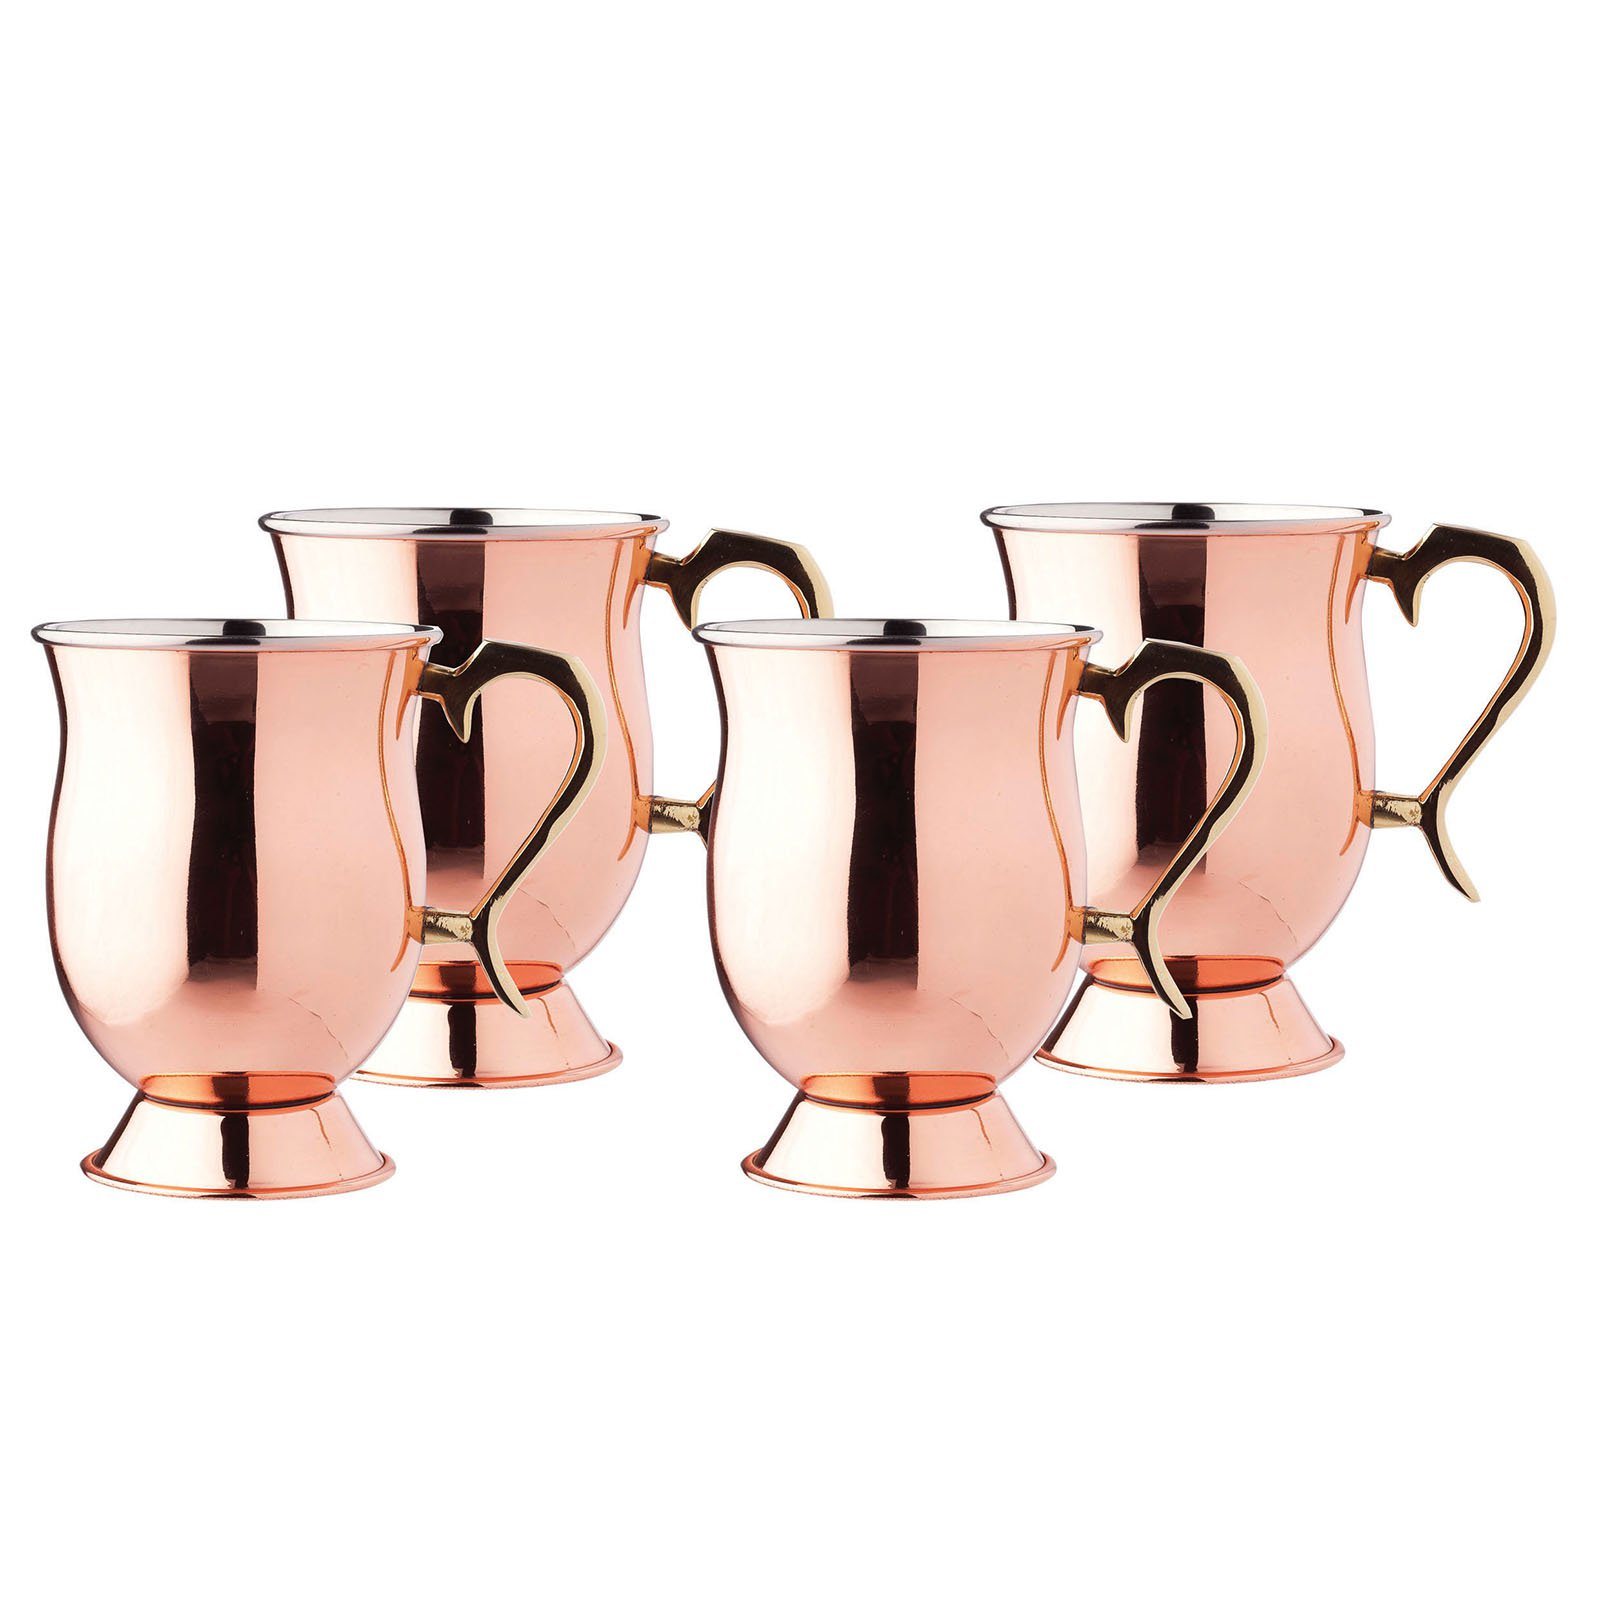 Old Dutch 16 oz. Smooth Tankards with Brass Handle - Set of 4